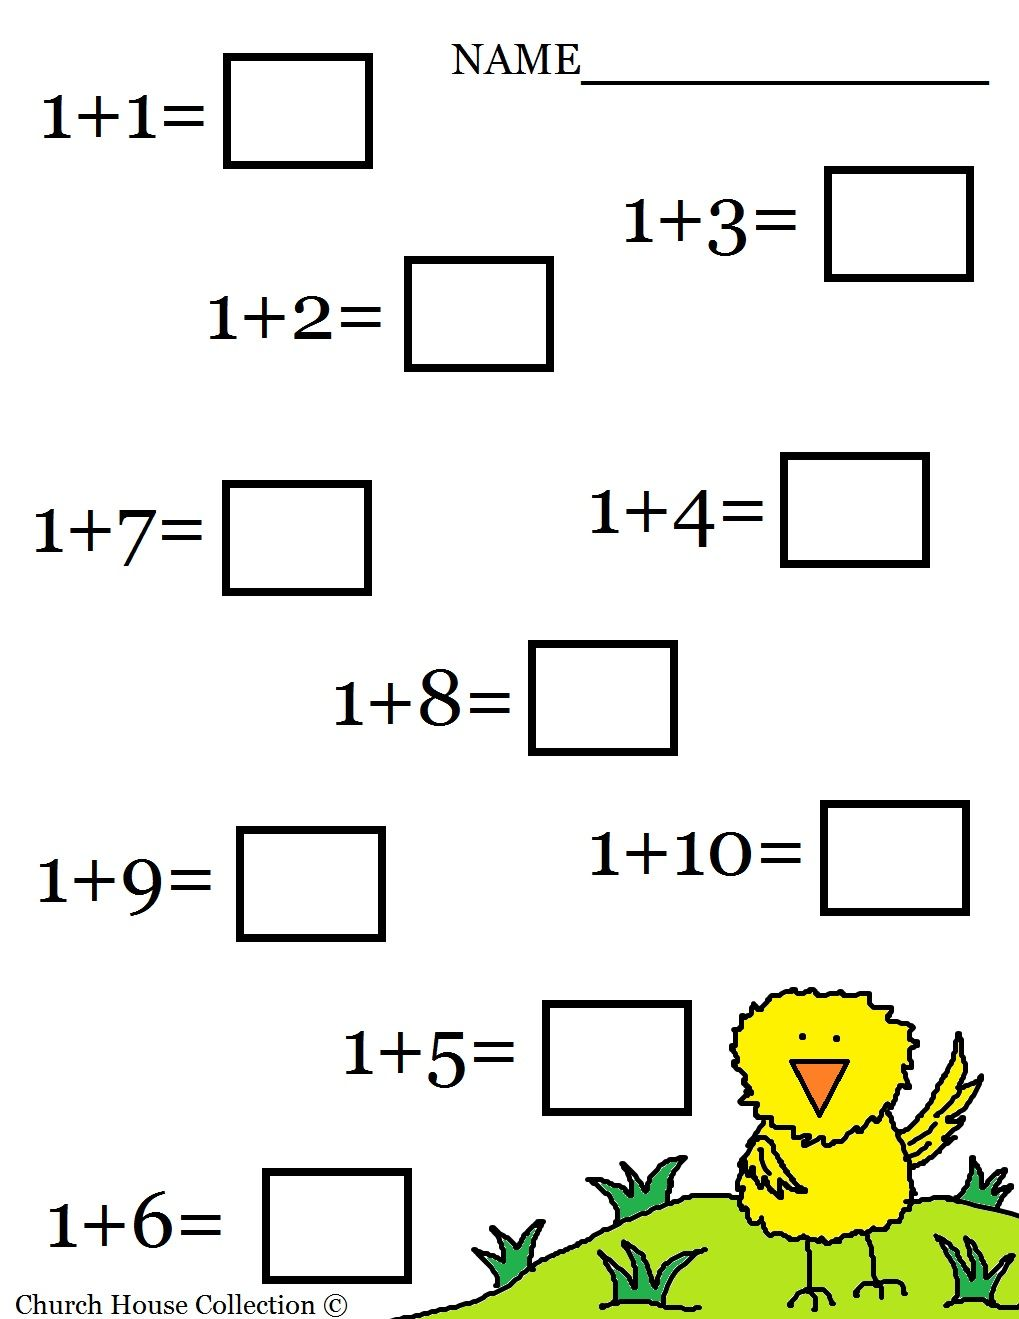 Aldiablosus  Prepossessing  Images About Worksheets  Math On Pinterest  Math Sheets  With Goodlooking  Images About Worksheets  Math On Pinterest  Math Sheets Math Worksheets For Kindergarten And Simple Addition With Adorable Holt Middle School Math Worksheets Also Second Grade Math Worksheets Free Printable In Addition School Worksheets For Free And Worksheets For Grammar As Well As Book Worksheet Additionally Vowels And Consonants Worksheets For Kids From Pinterestcom With Aldiablosus  Goodlooking  Images About Worksheets  Math On Pinterest  Math Sheets  With Adorable  Images About Worksheets  Math On Pinterest  Math Sheets Math Worksheets For Kindergarten And Simple Addition And Prepossessing Holt Middle School Math Worksheets Also Second Grade Math Worksheets Free Printable In Addition School Worksheets For Free From Pinterestcom